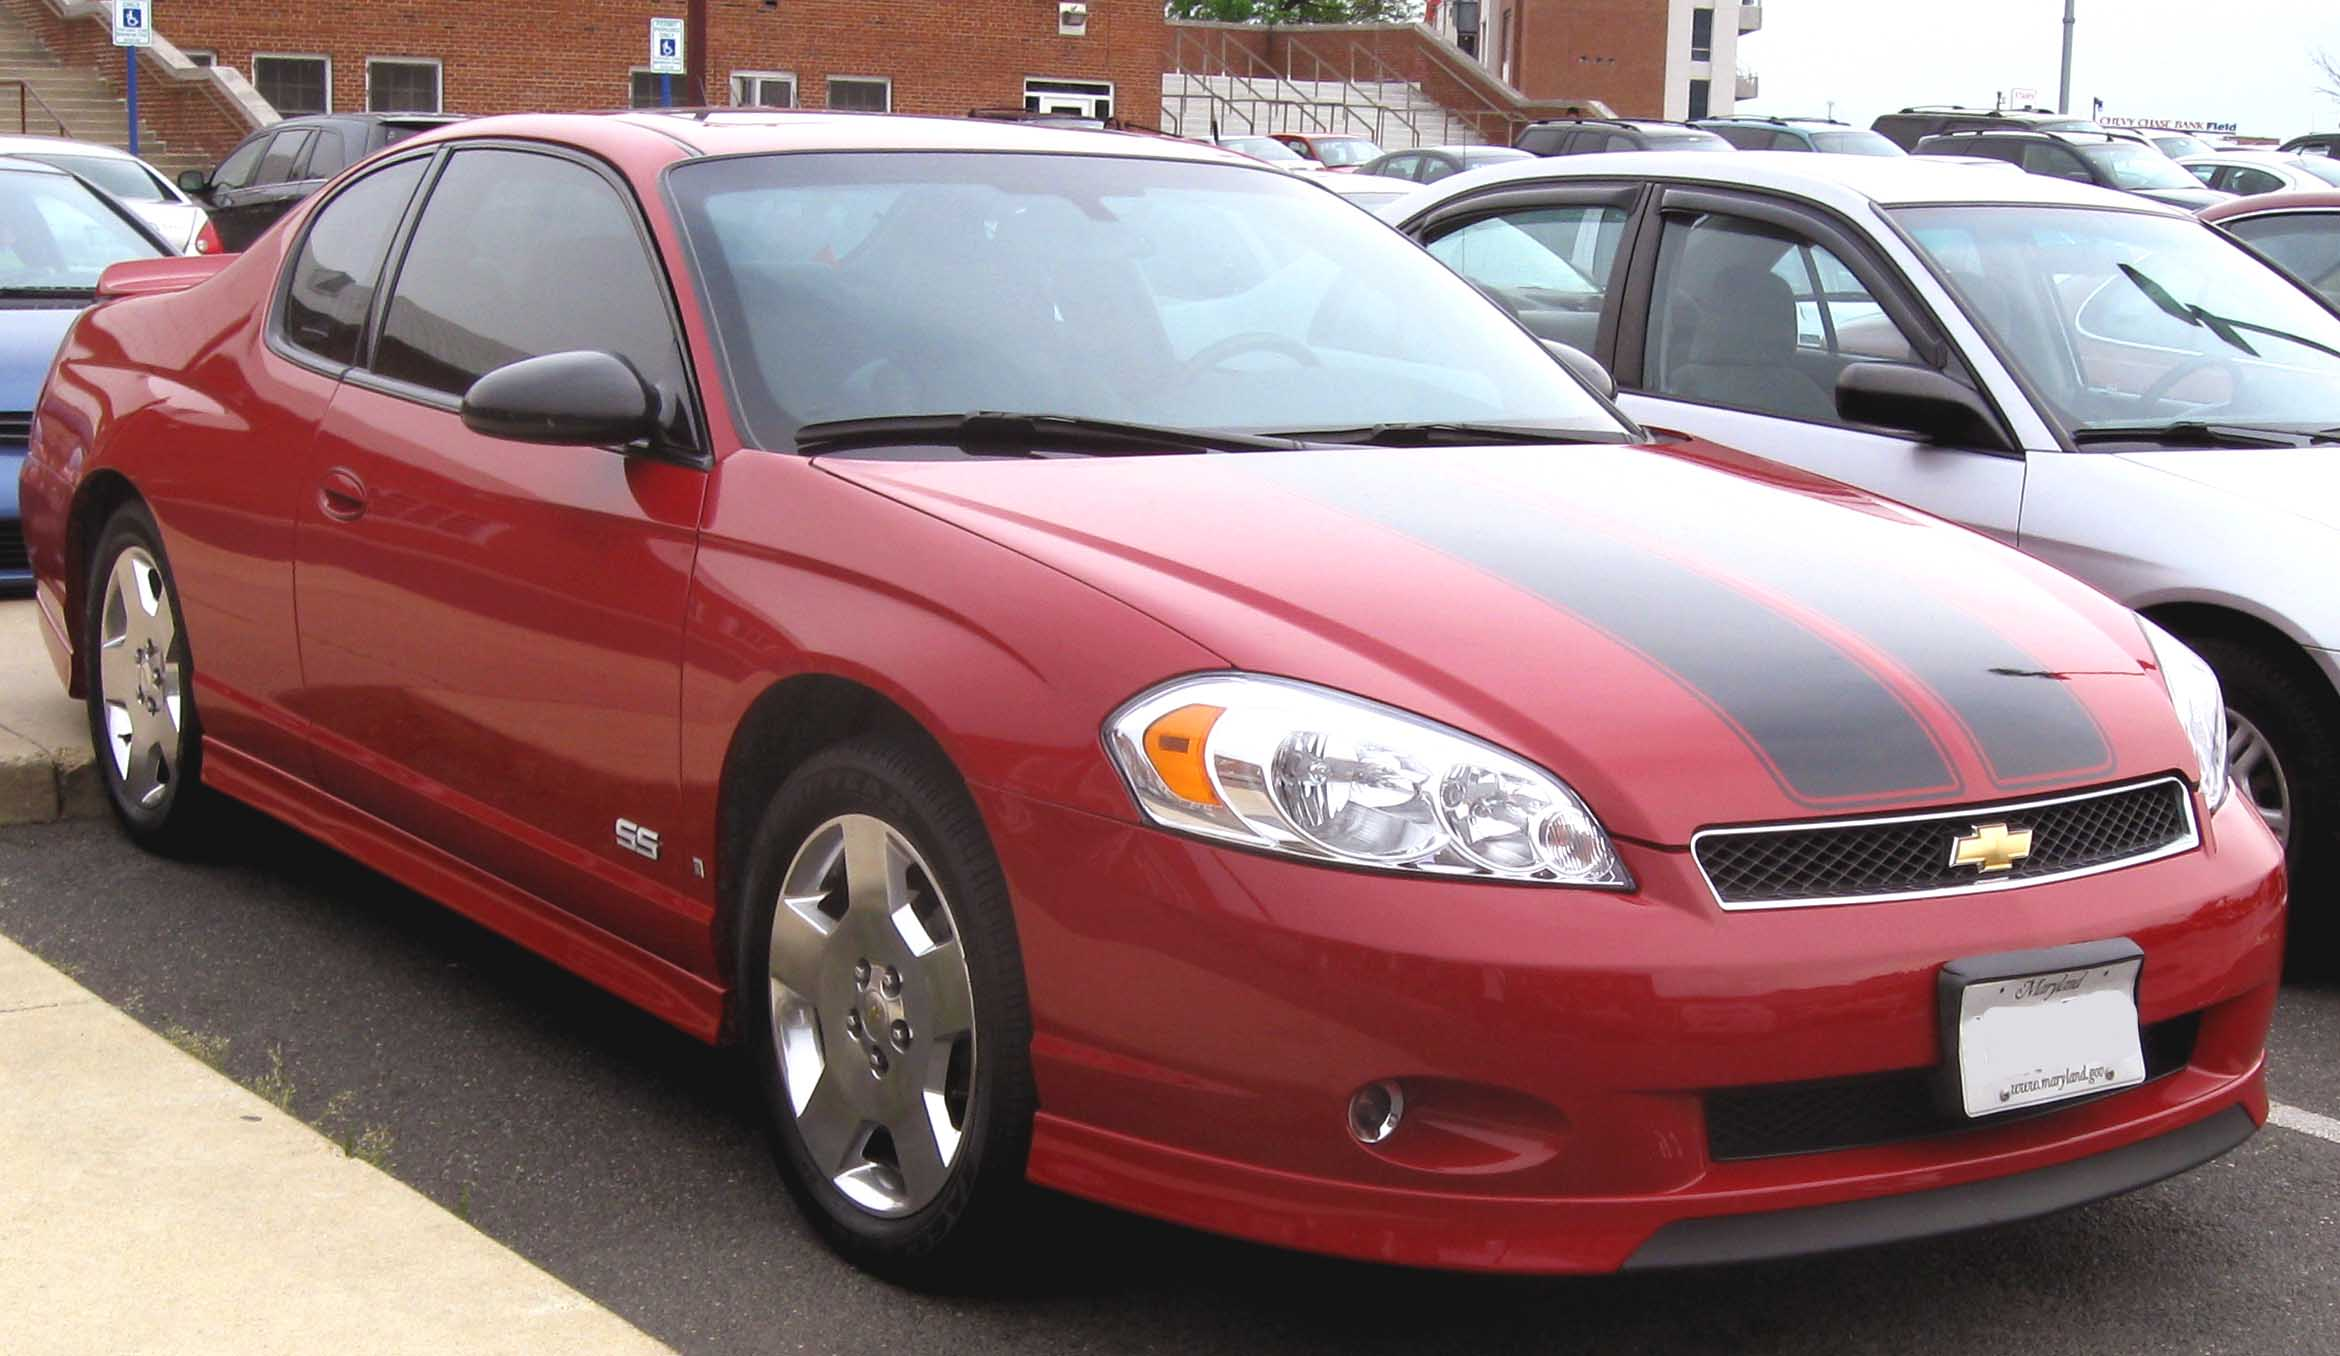 File:06-07 Chevrolet Monte Carlo SS.jpg - Wikimedia Commons